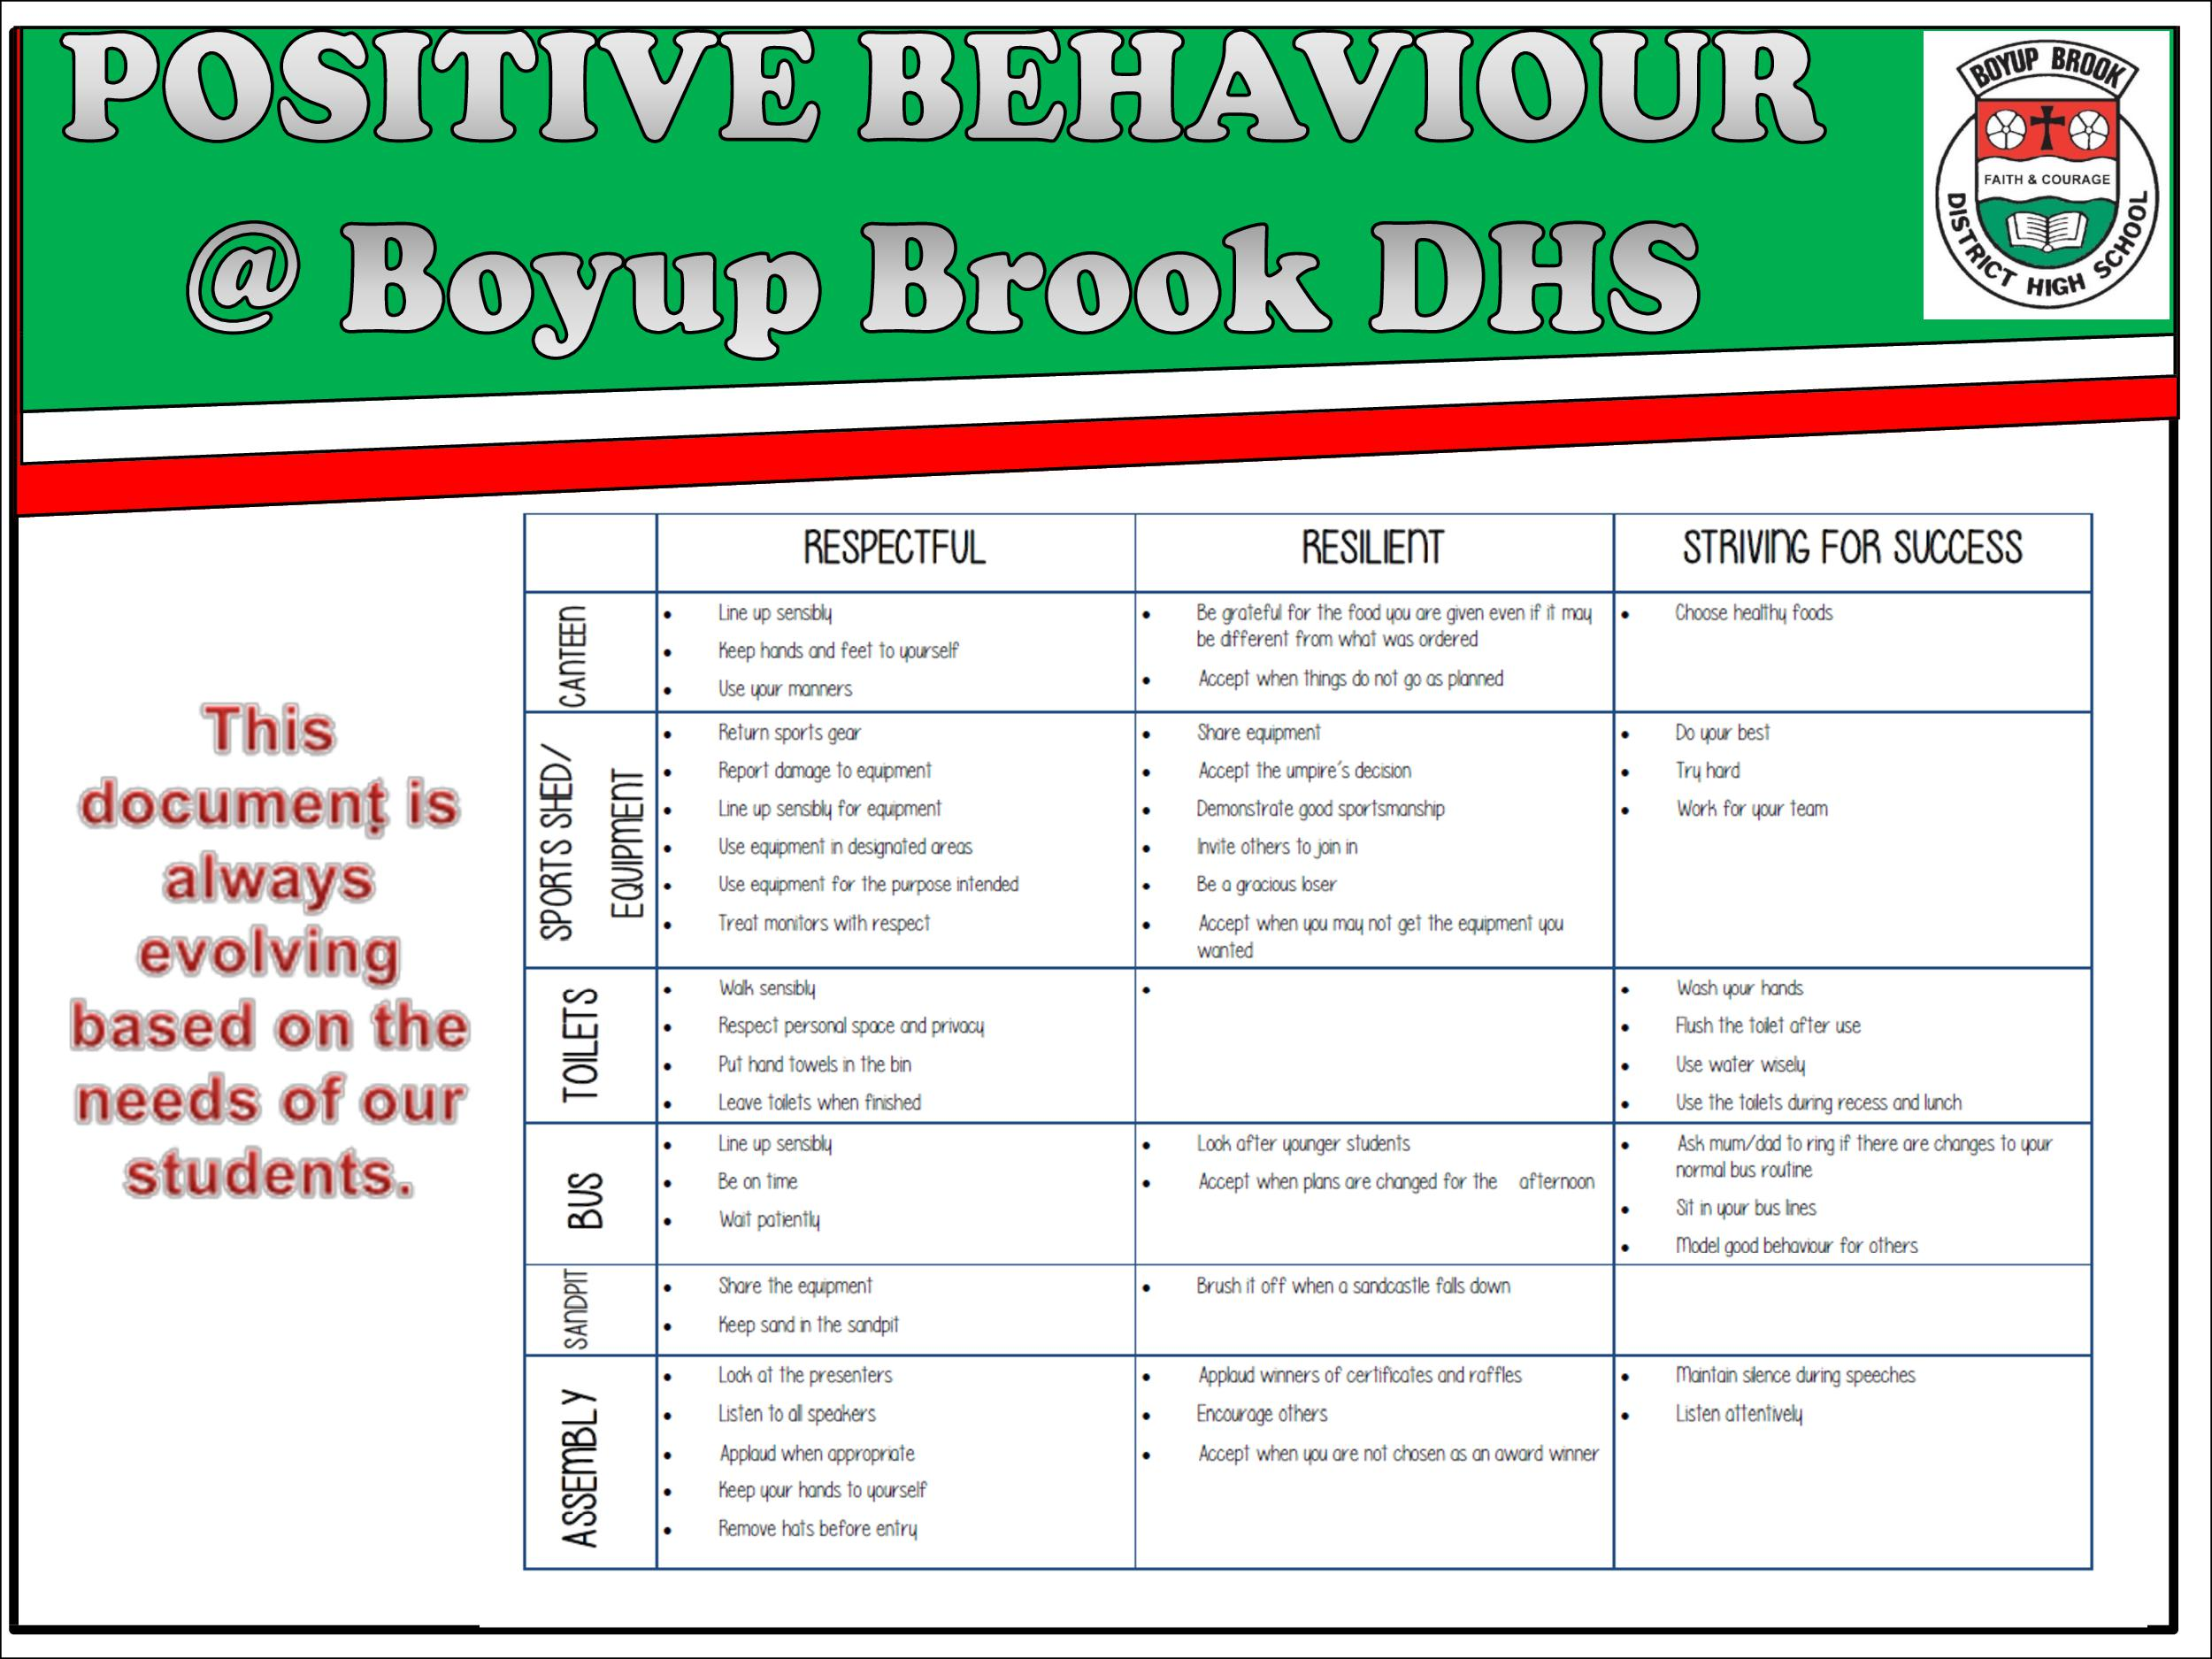 Positive Behaviour Support Page 13